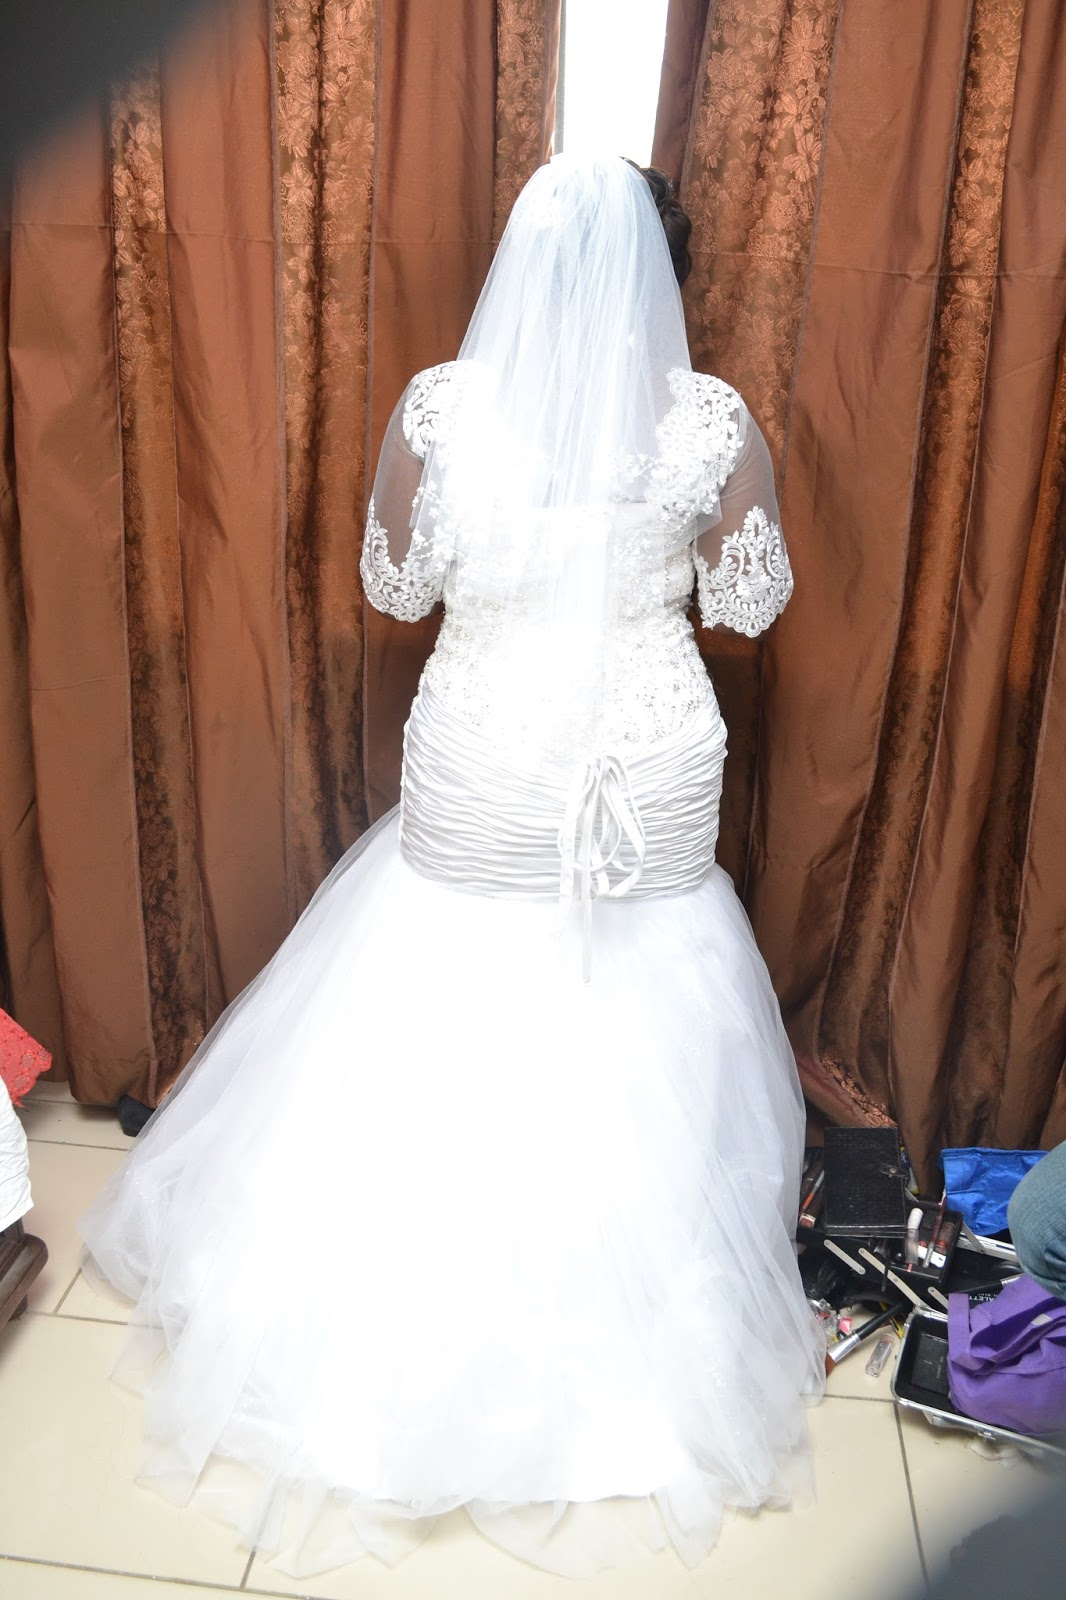 Stella dimoko wedding dresses for sale on for Wedding dresses used once